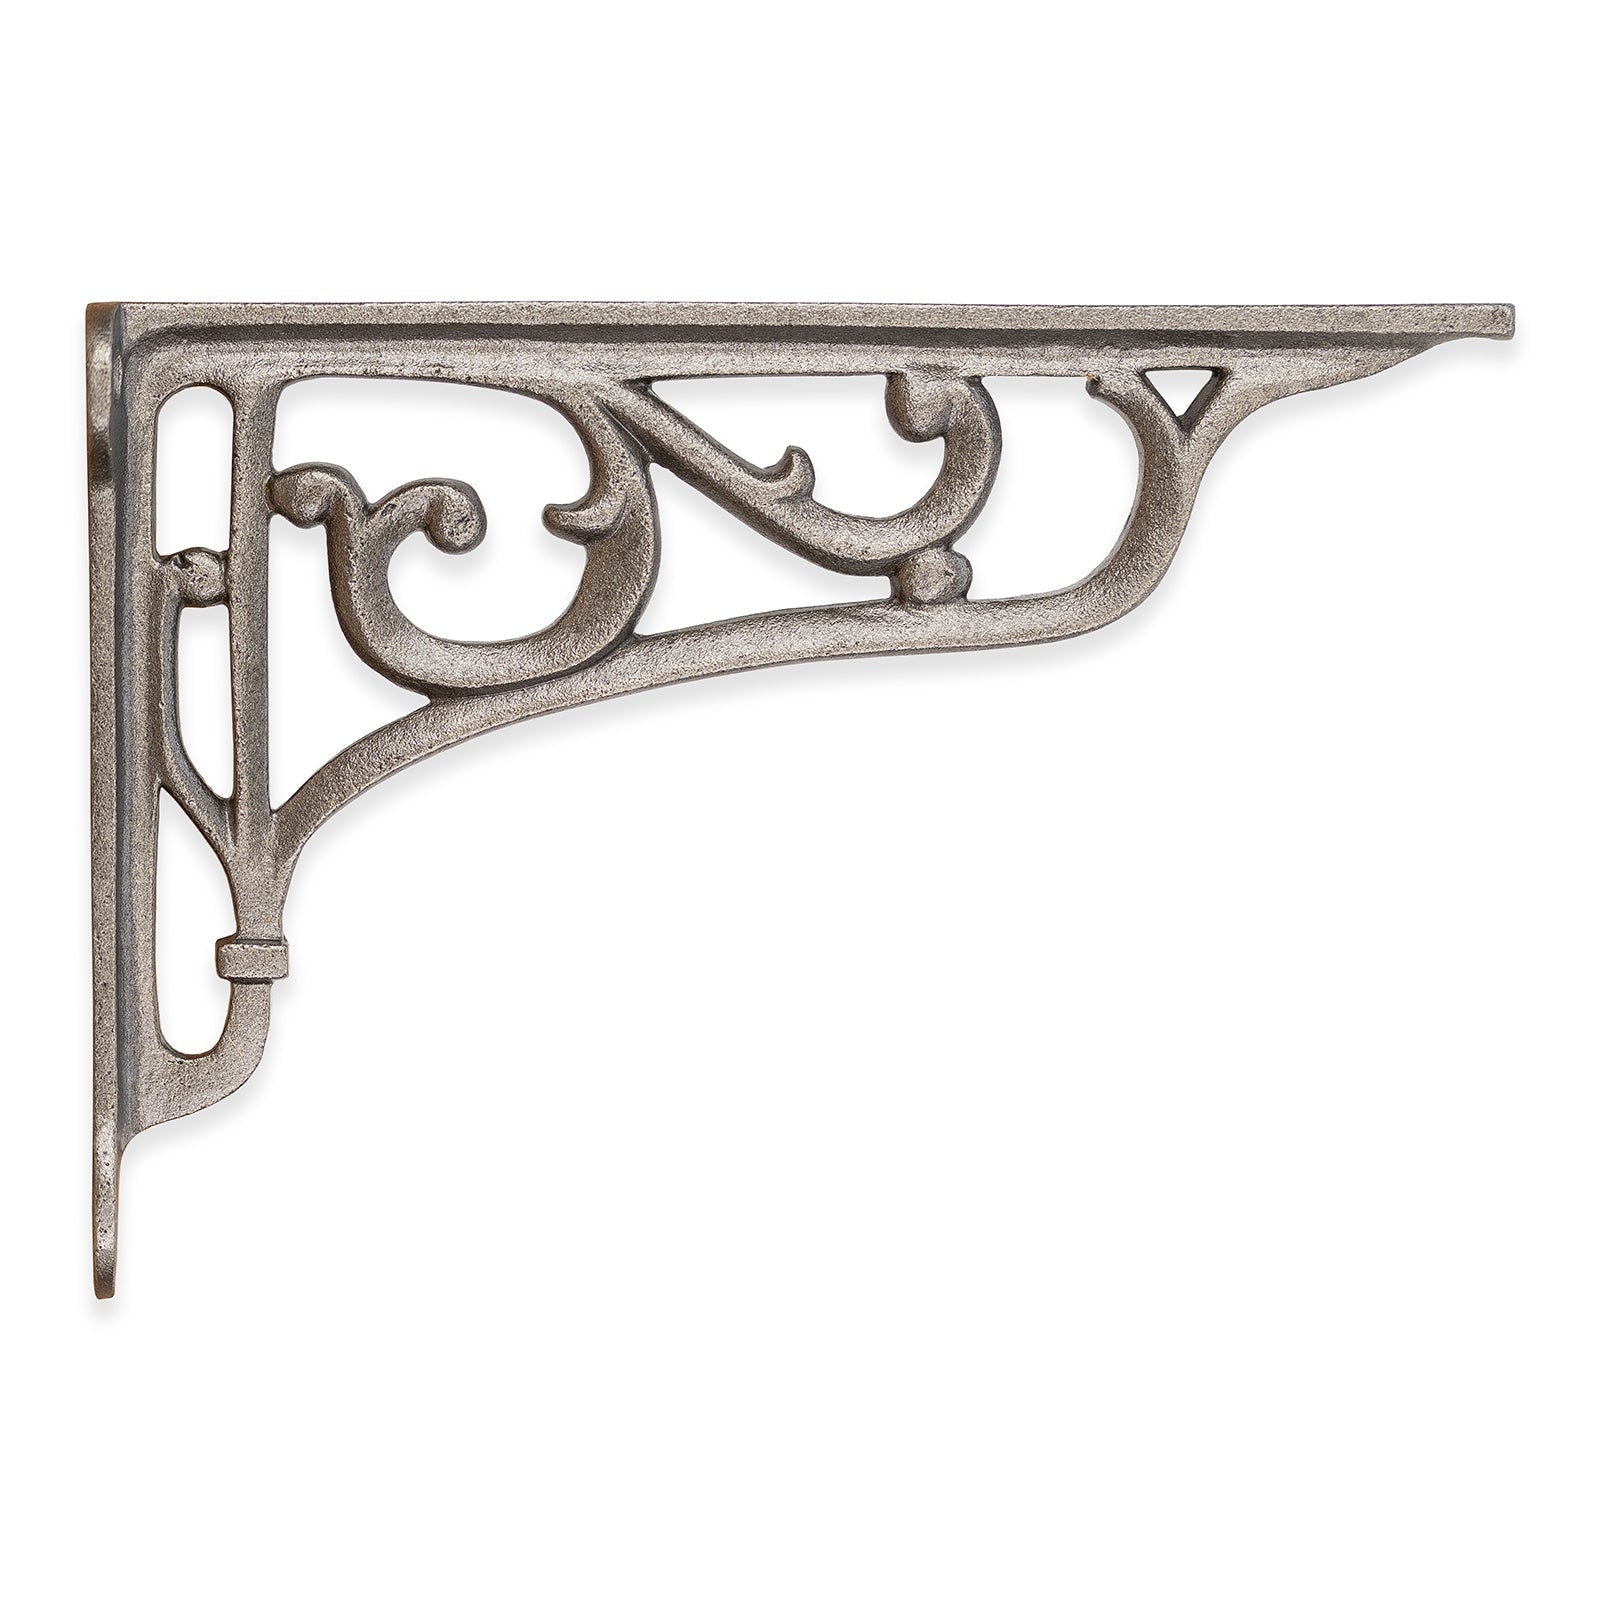 Victorian cast iron shelf bracket